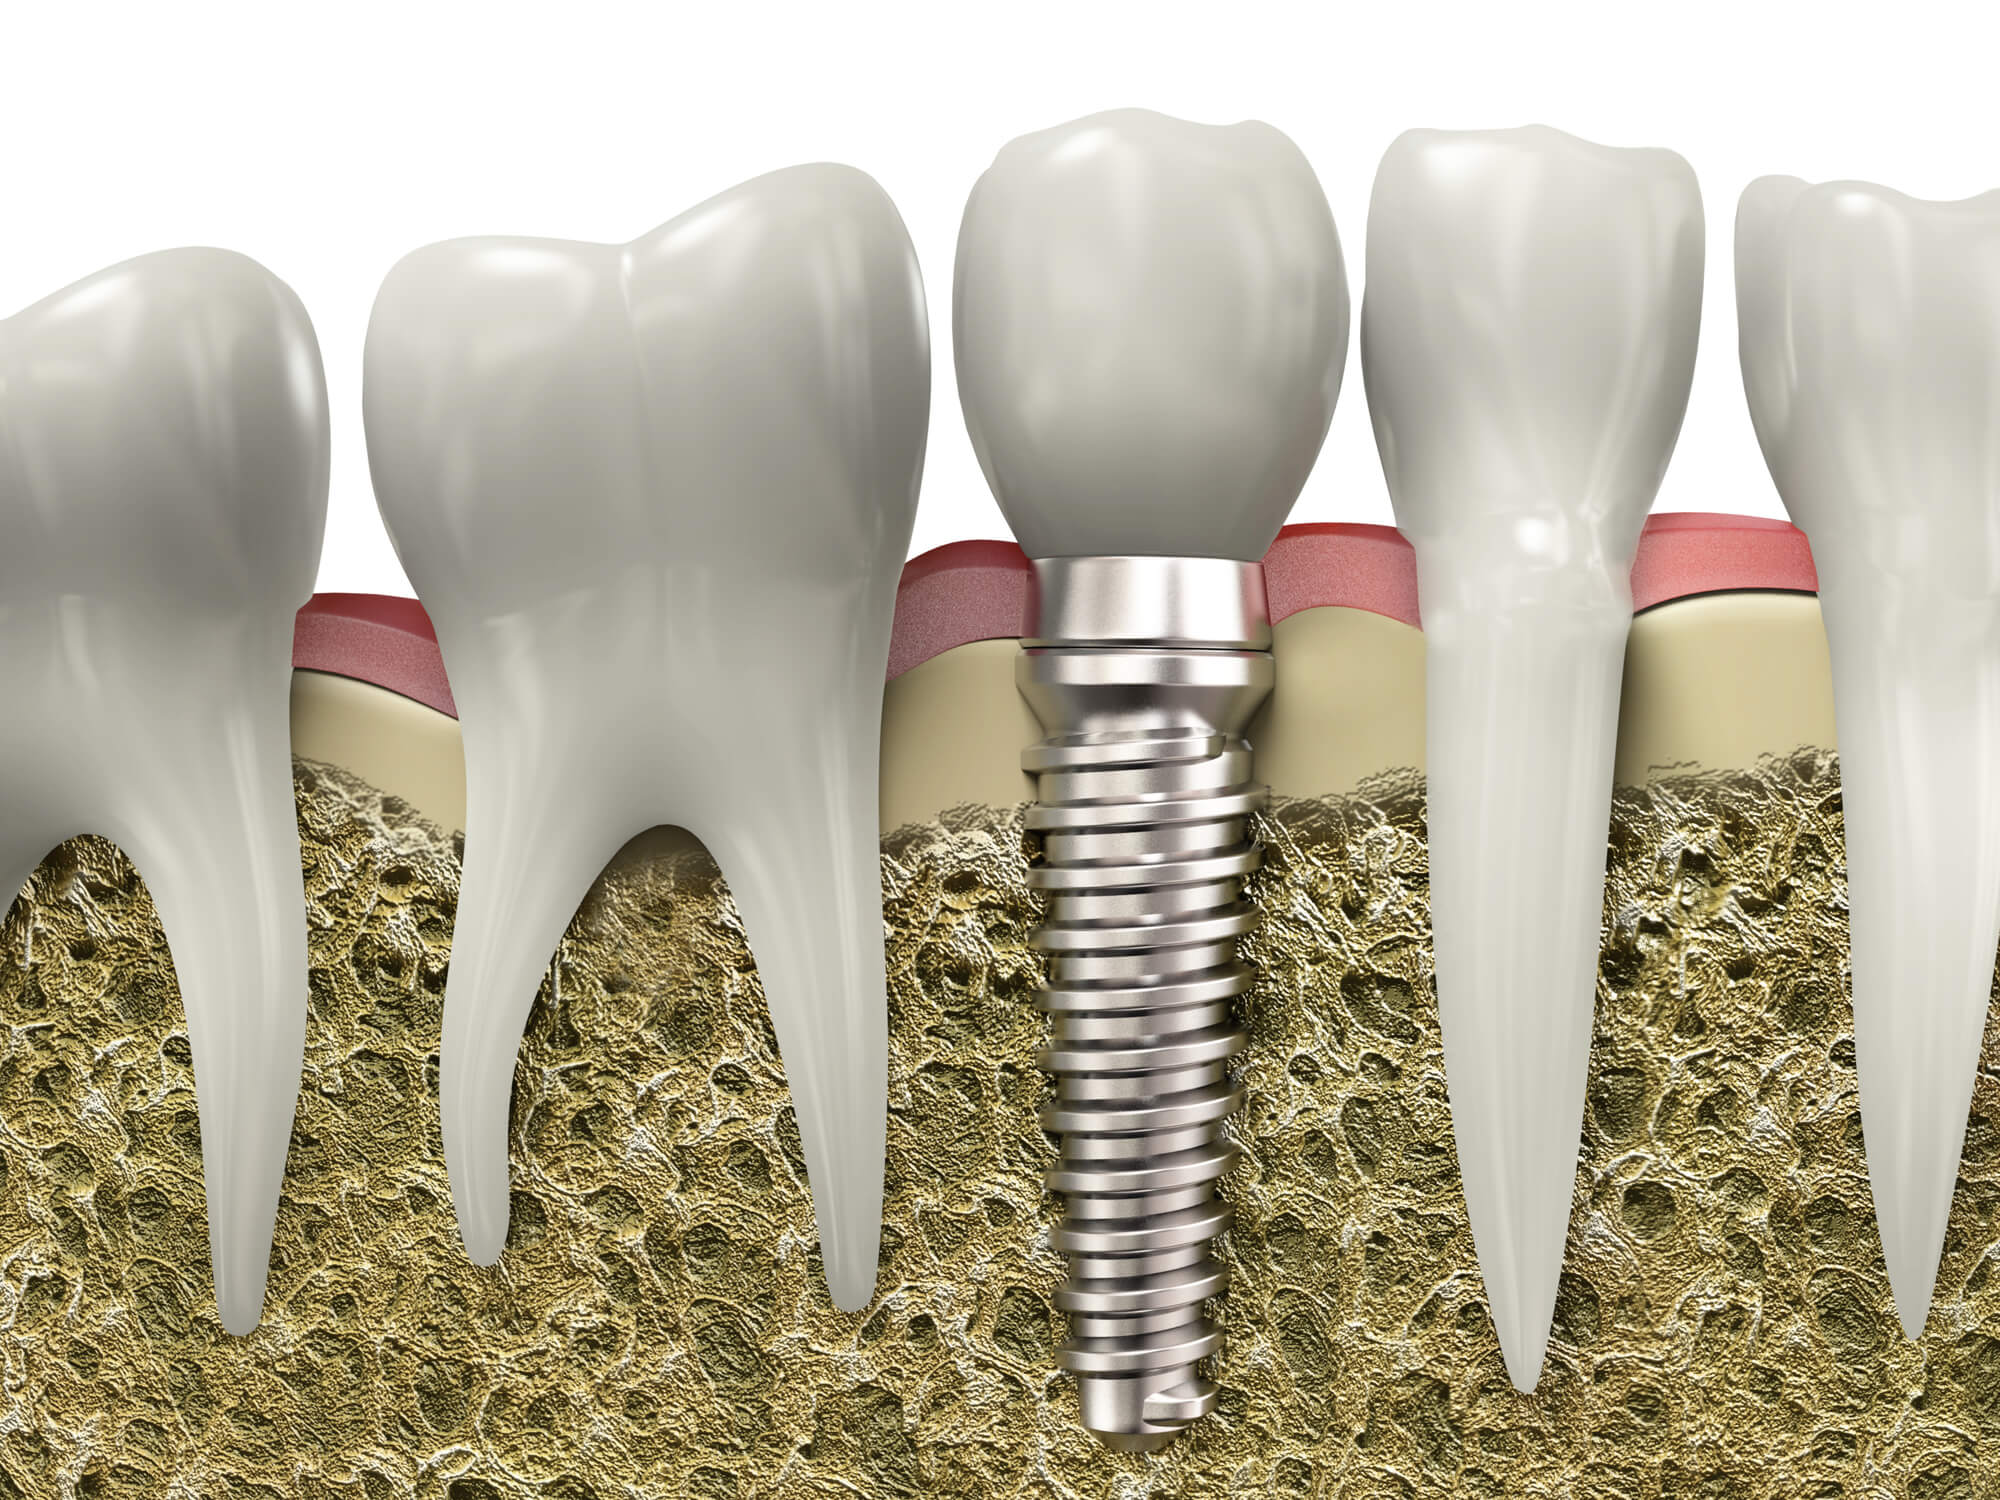 who offers dental implants simpsonville sc?